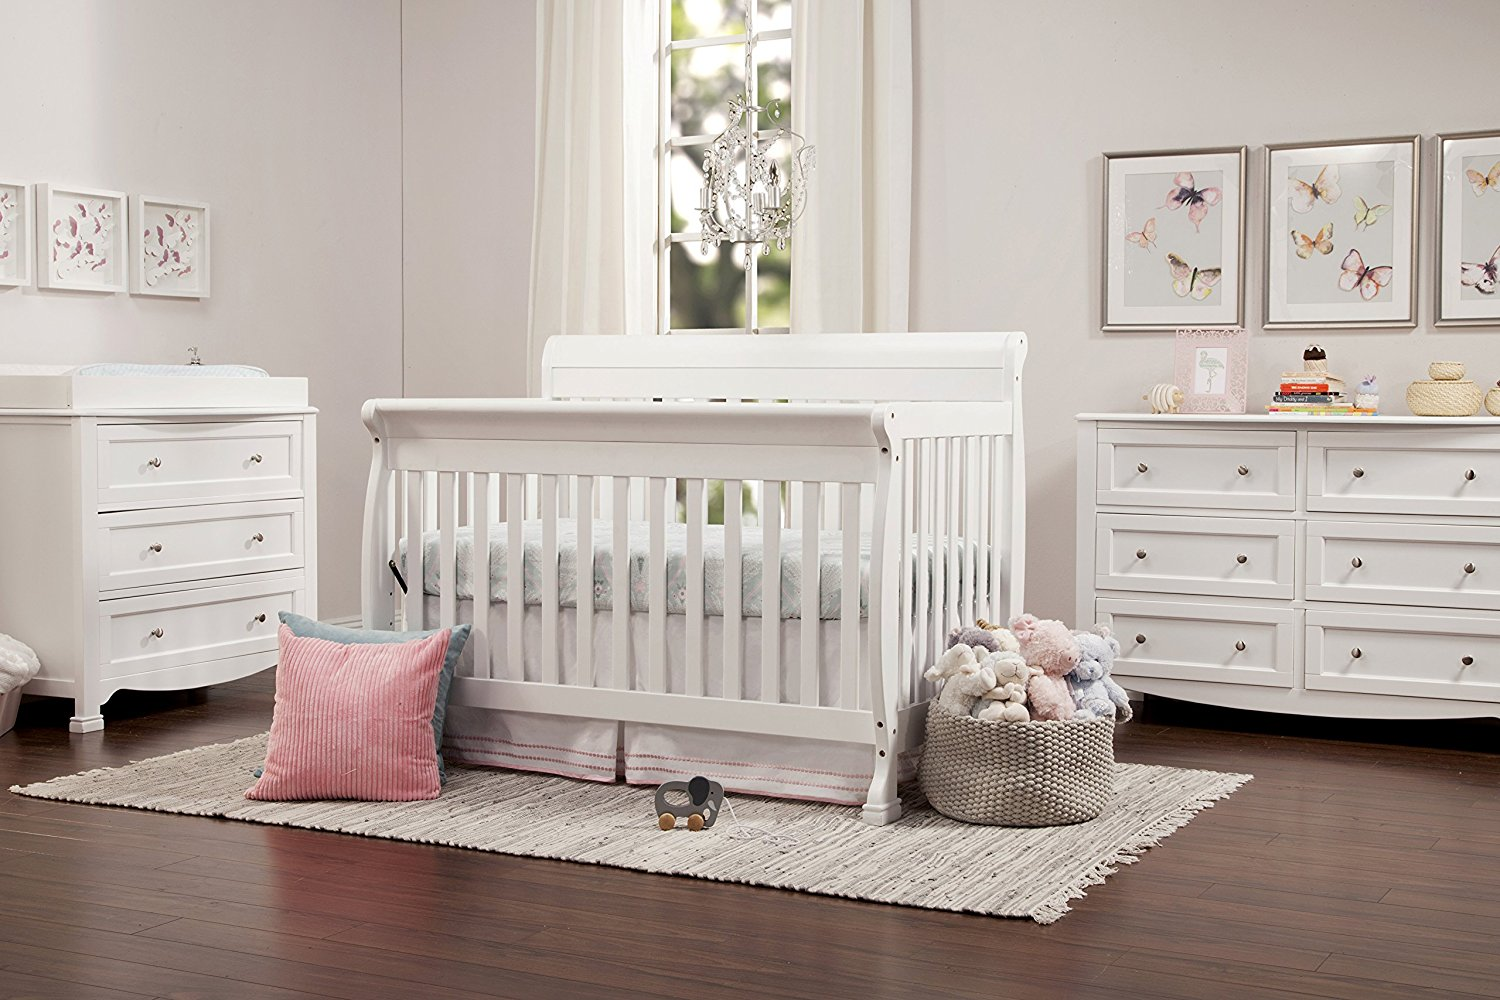 Best Nursery Collections with Restoration Hardware Cribs Design: Restoration Hardware Cribs | Greenguard Cribs | Baby Crib Carousel